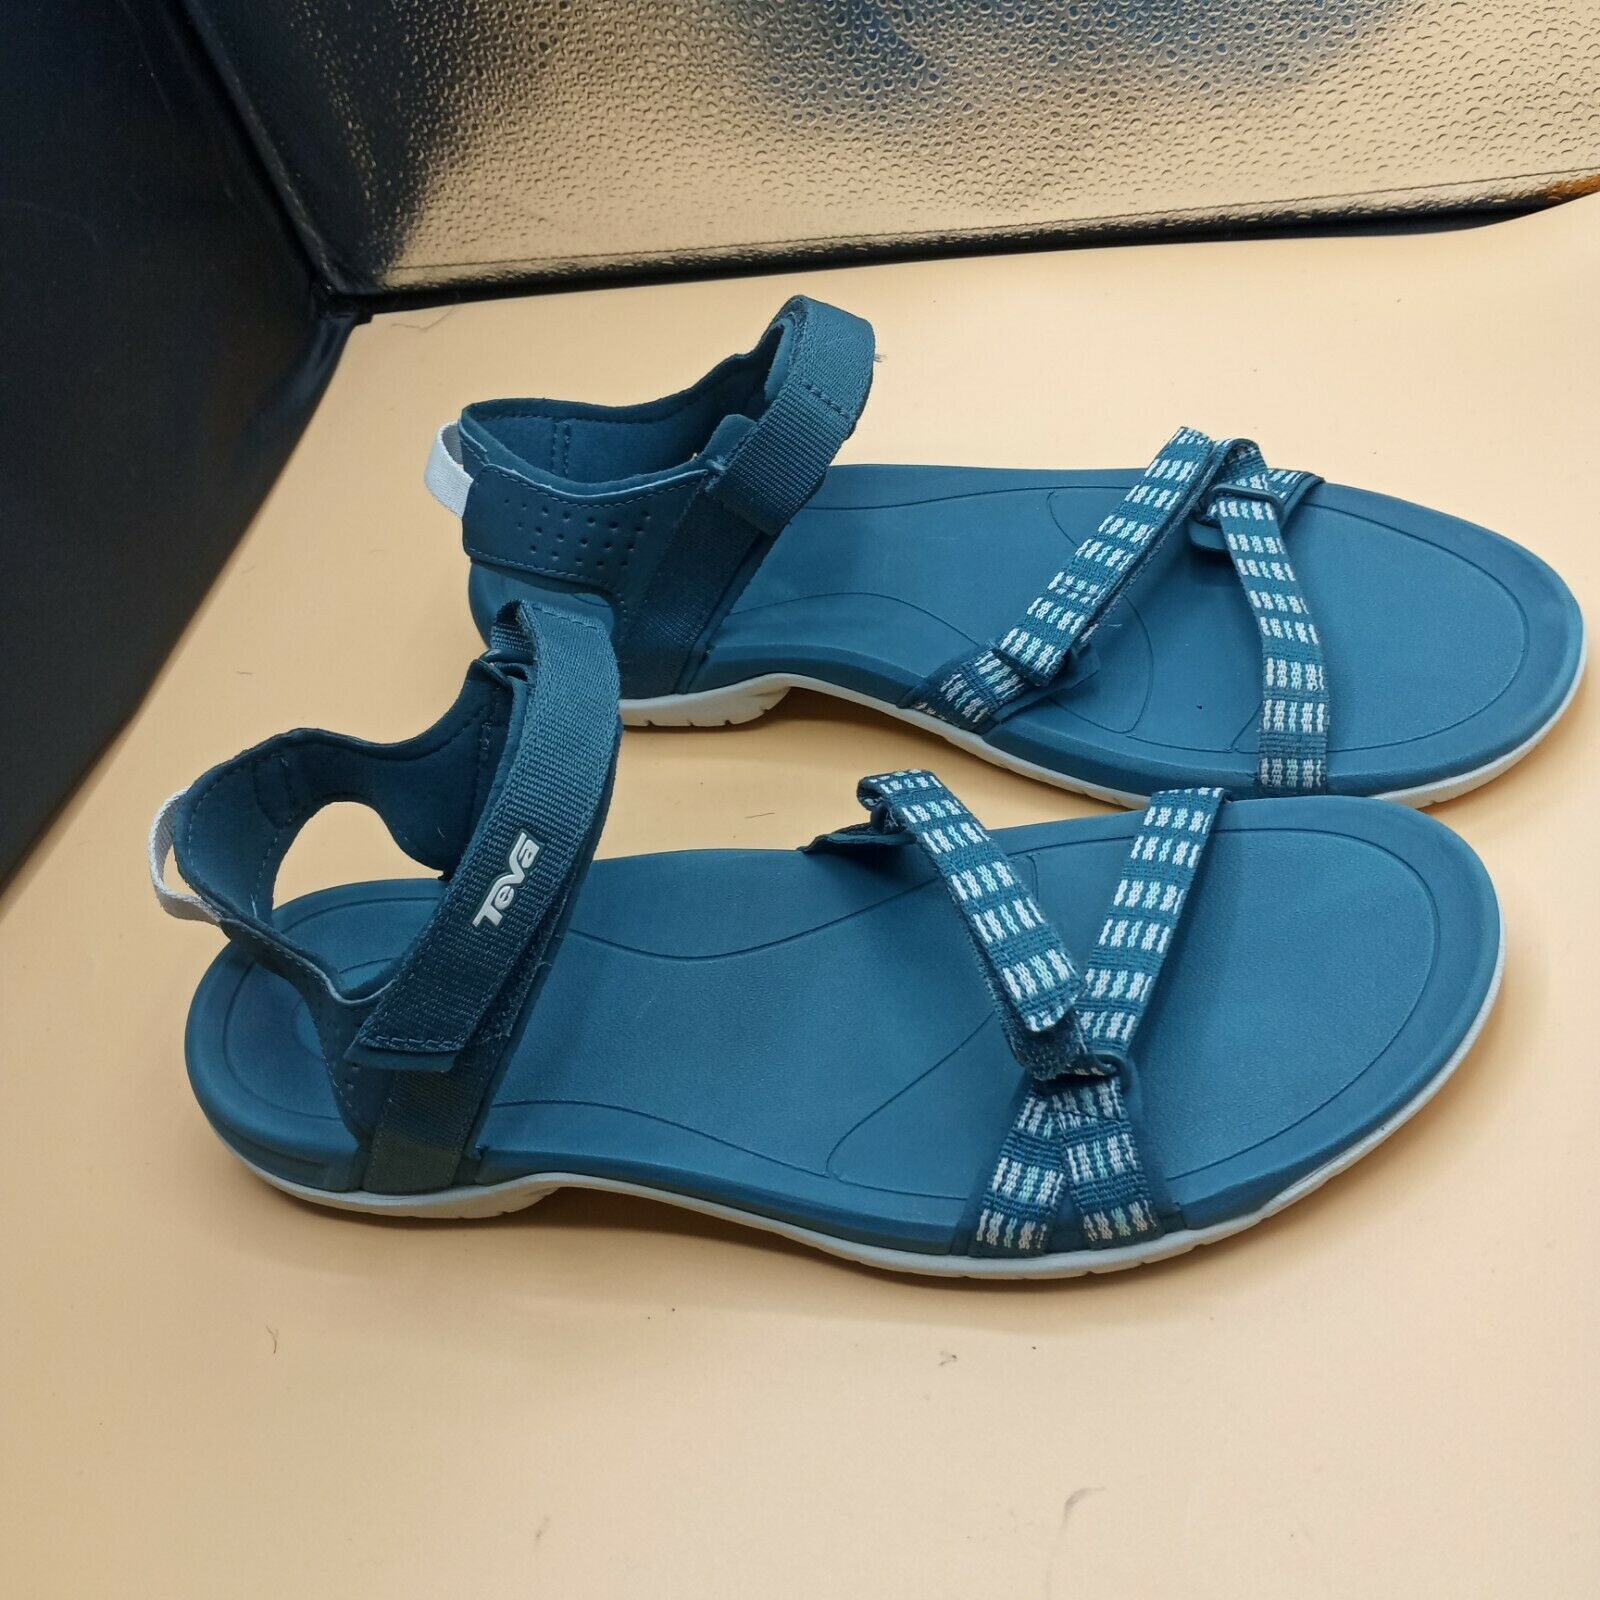 Teva Women Sandals 11 - image 7